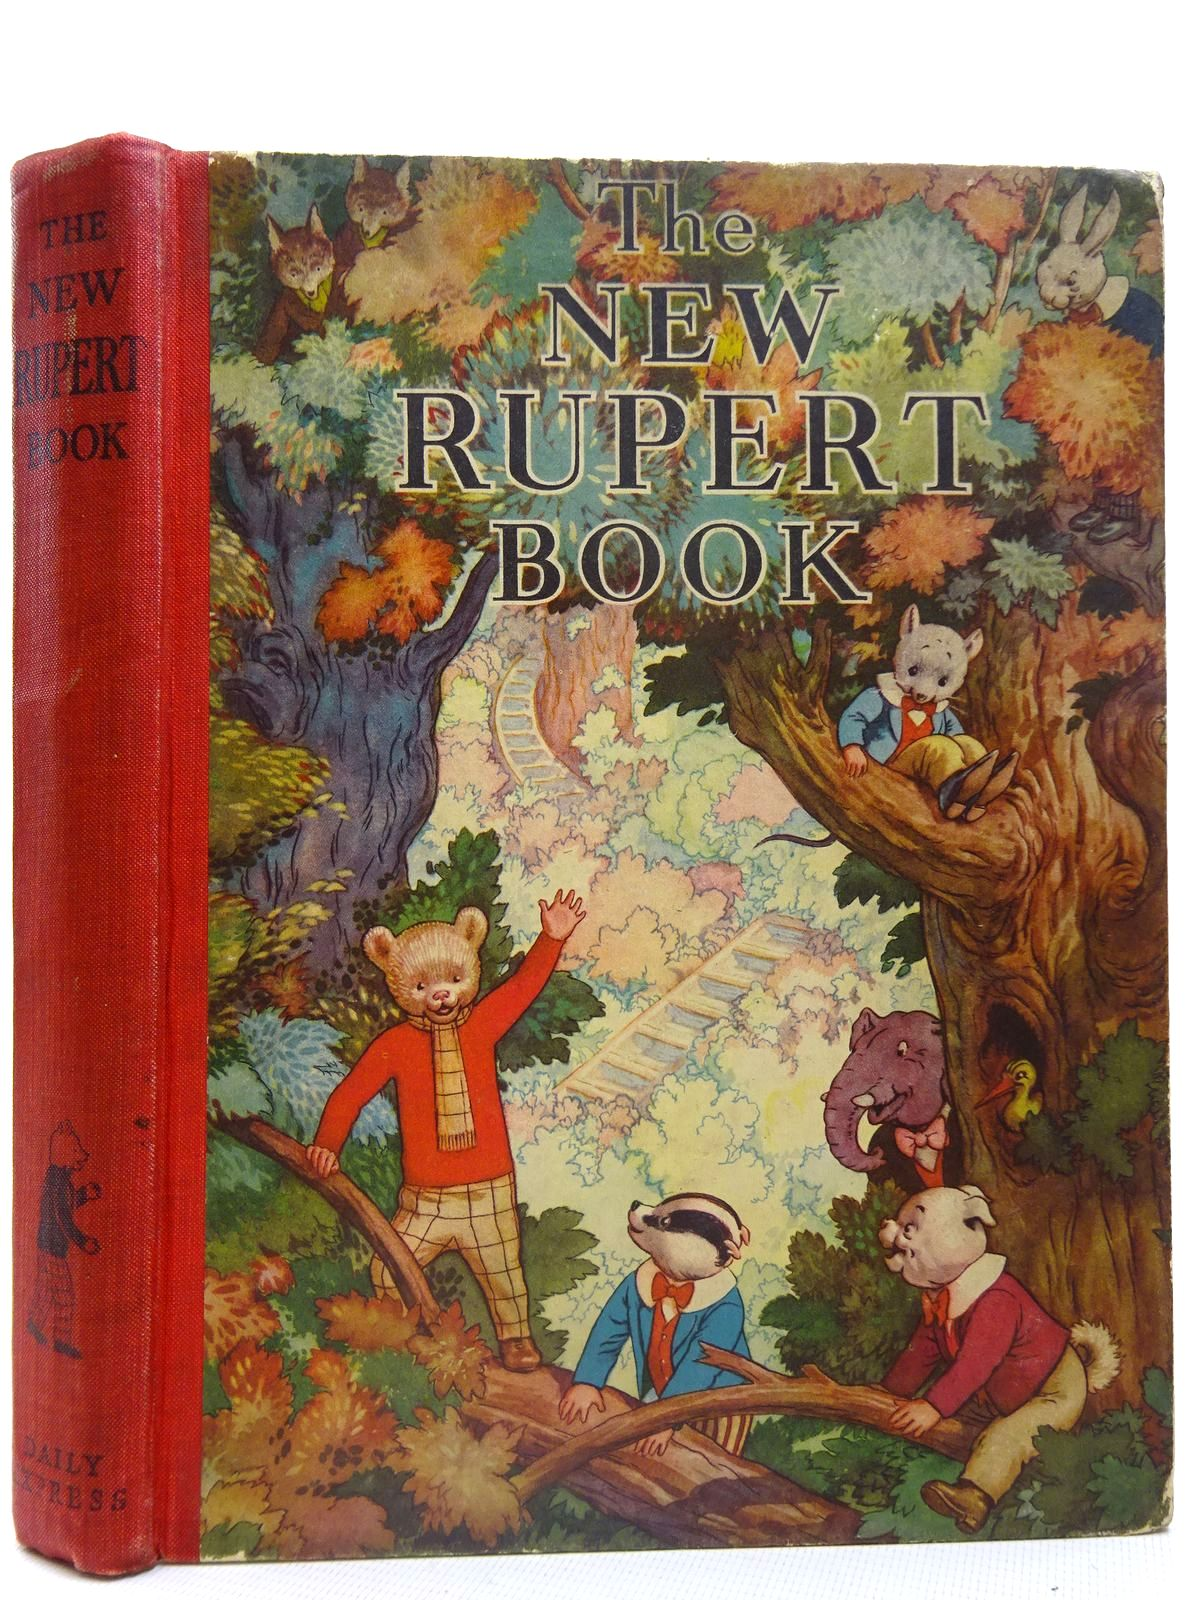 Photo of RUPERT ANNUAL 1938 - THE NEW RUPERT BOOK written by Bestall, Alfred illustrated by Bestall, Alfred published by Daily Express (STOCK CODE: 2126694)  for sale by Stella & Rose's Books